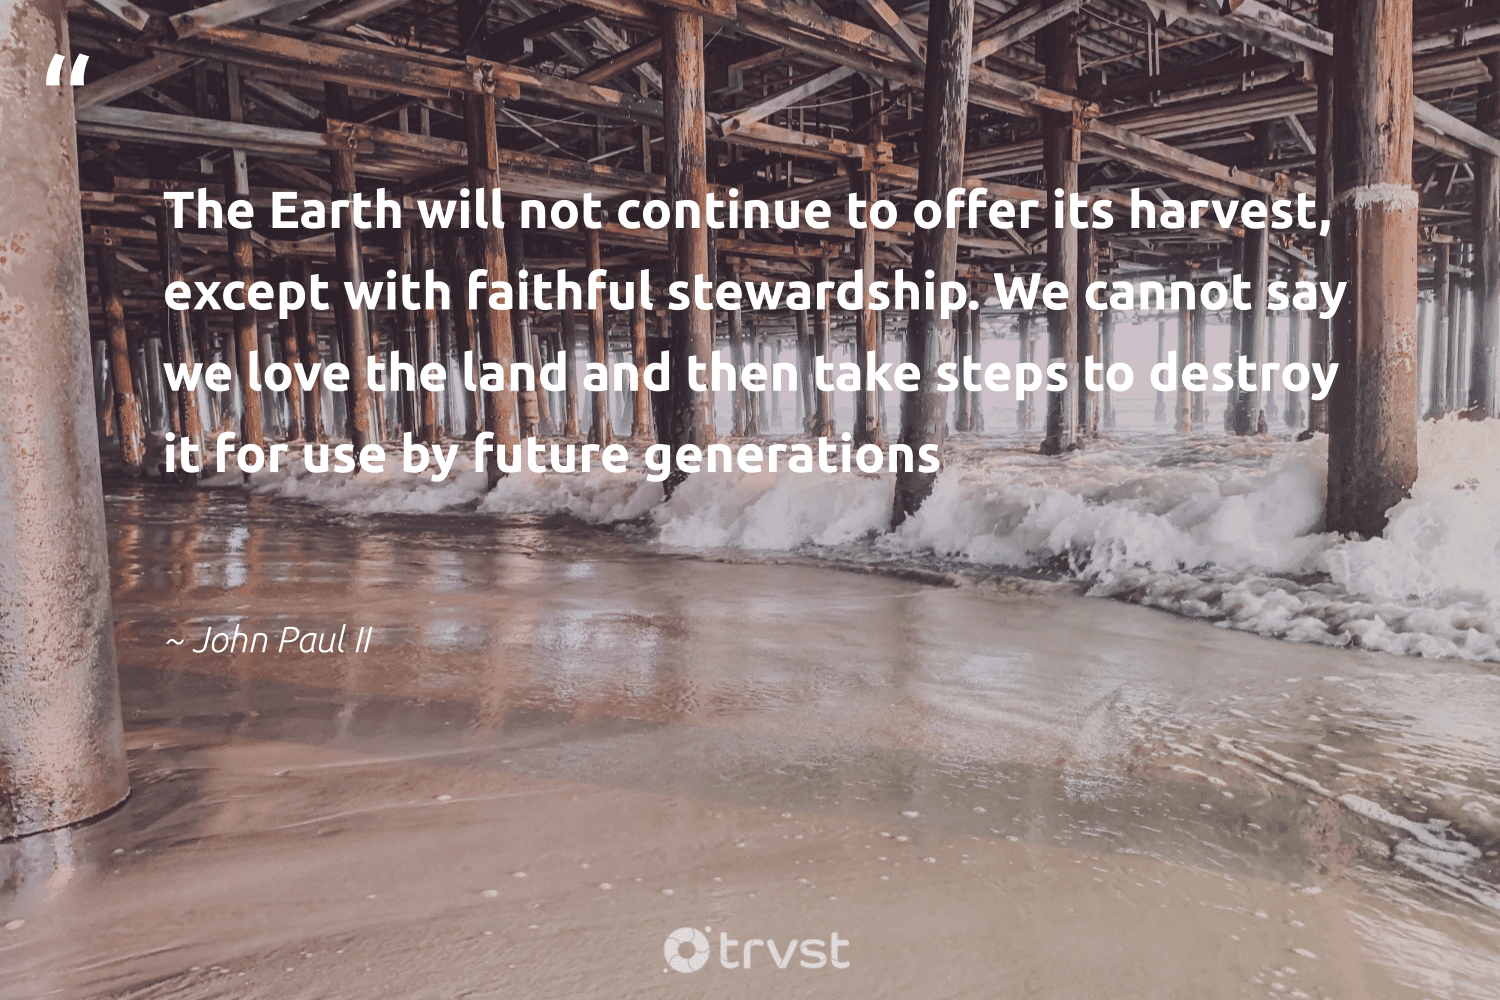 """""""The Earth will not continue to offer its harvest, except with faithful stewardship. We cannot say we love the land and then take steps to destroy it for use by future generations""""  - John Paul II #trvst #quotes #environment #love #earth #nature #wildlifeplanet #sustainable #bethechange #conservation #getoutside #noplanetb"""